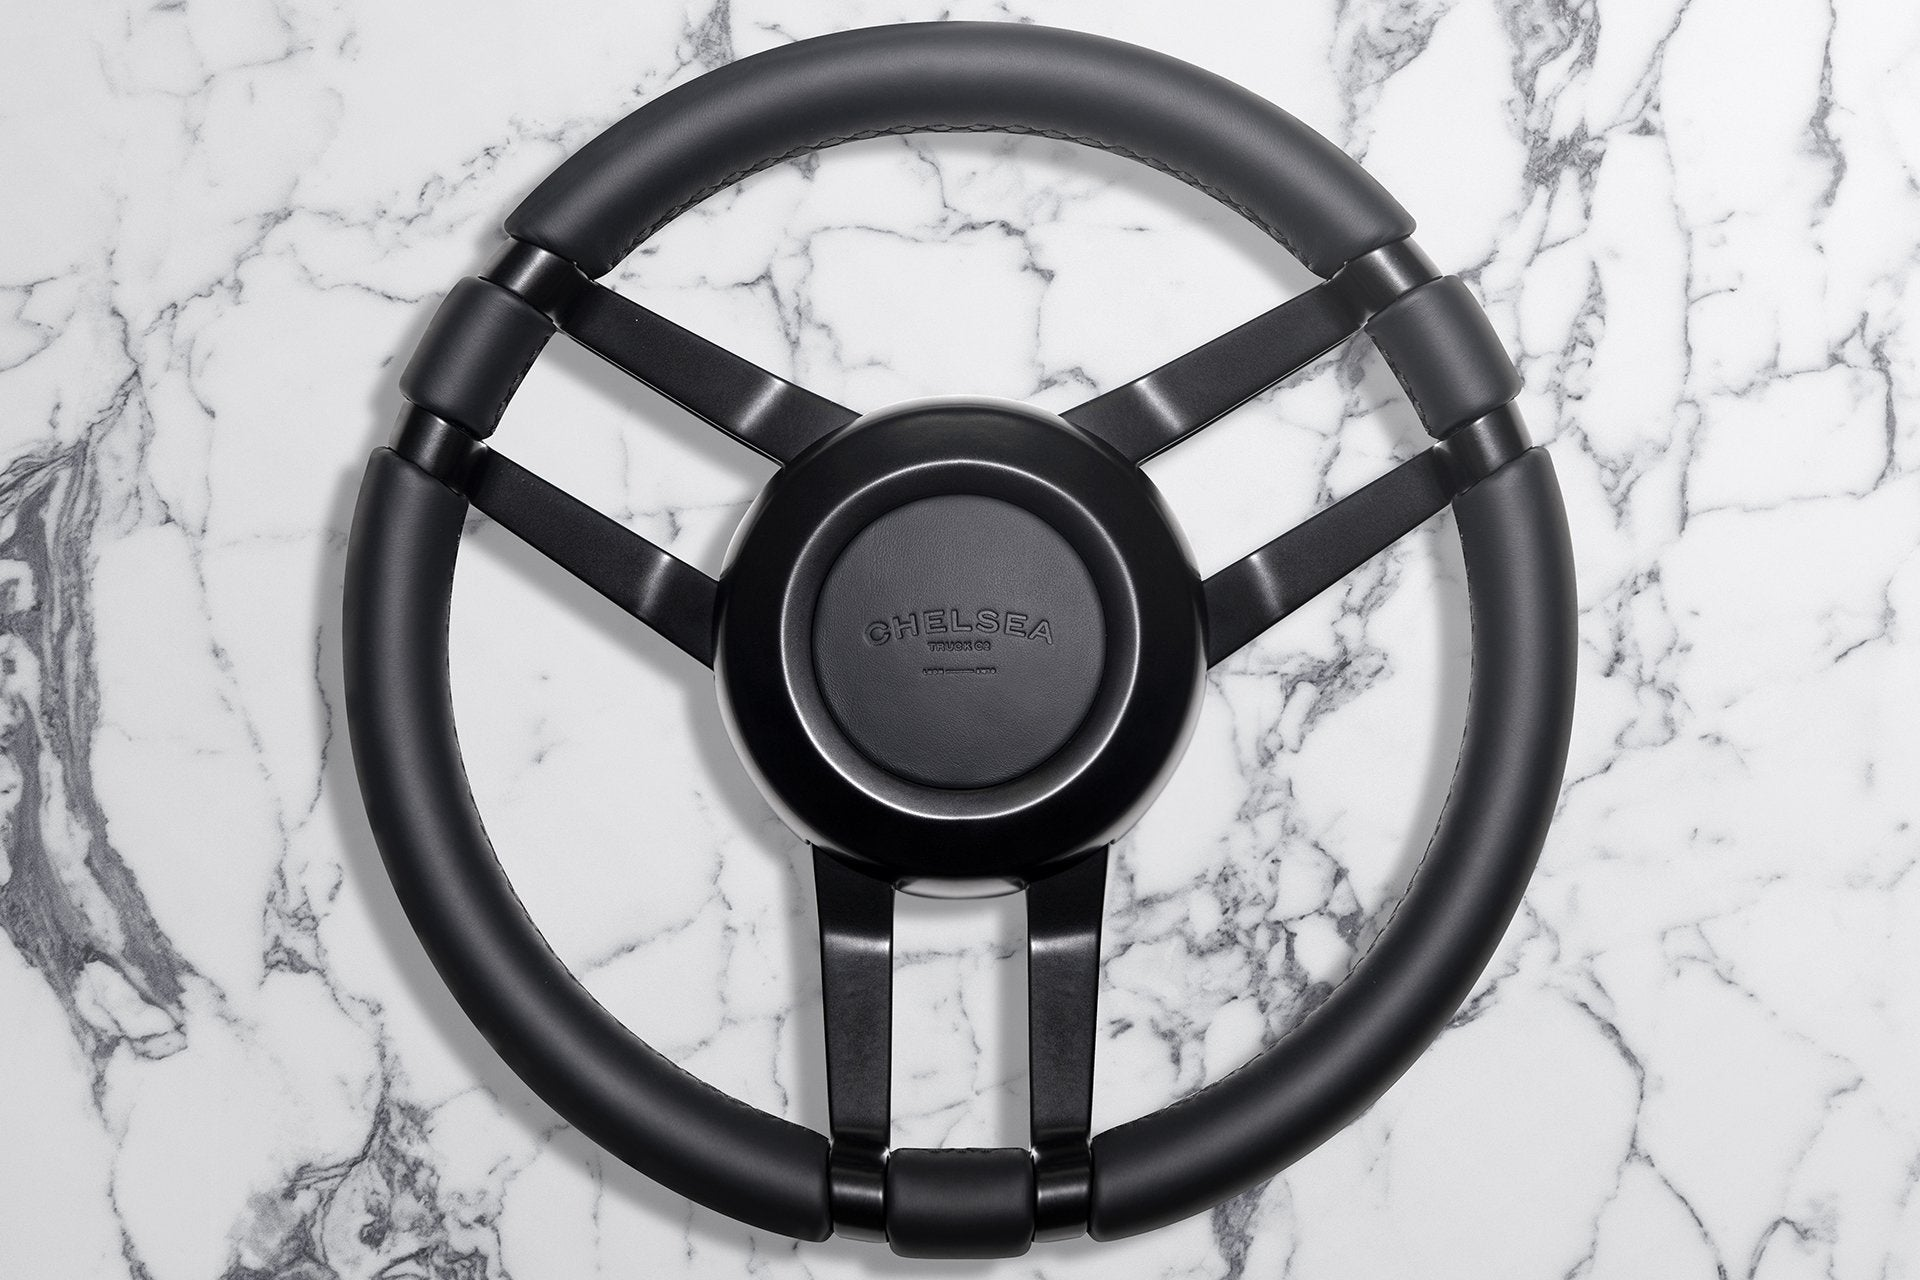 Land Rover Defender (1991-2016) Stealth Black Double 3-Spoke Steering Wheel